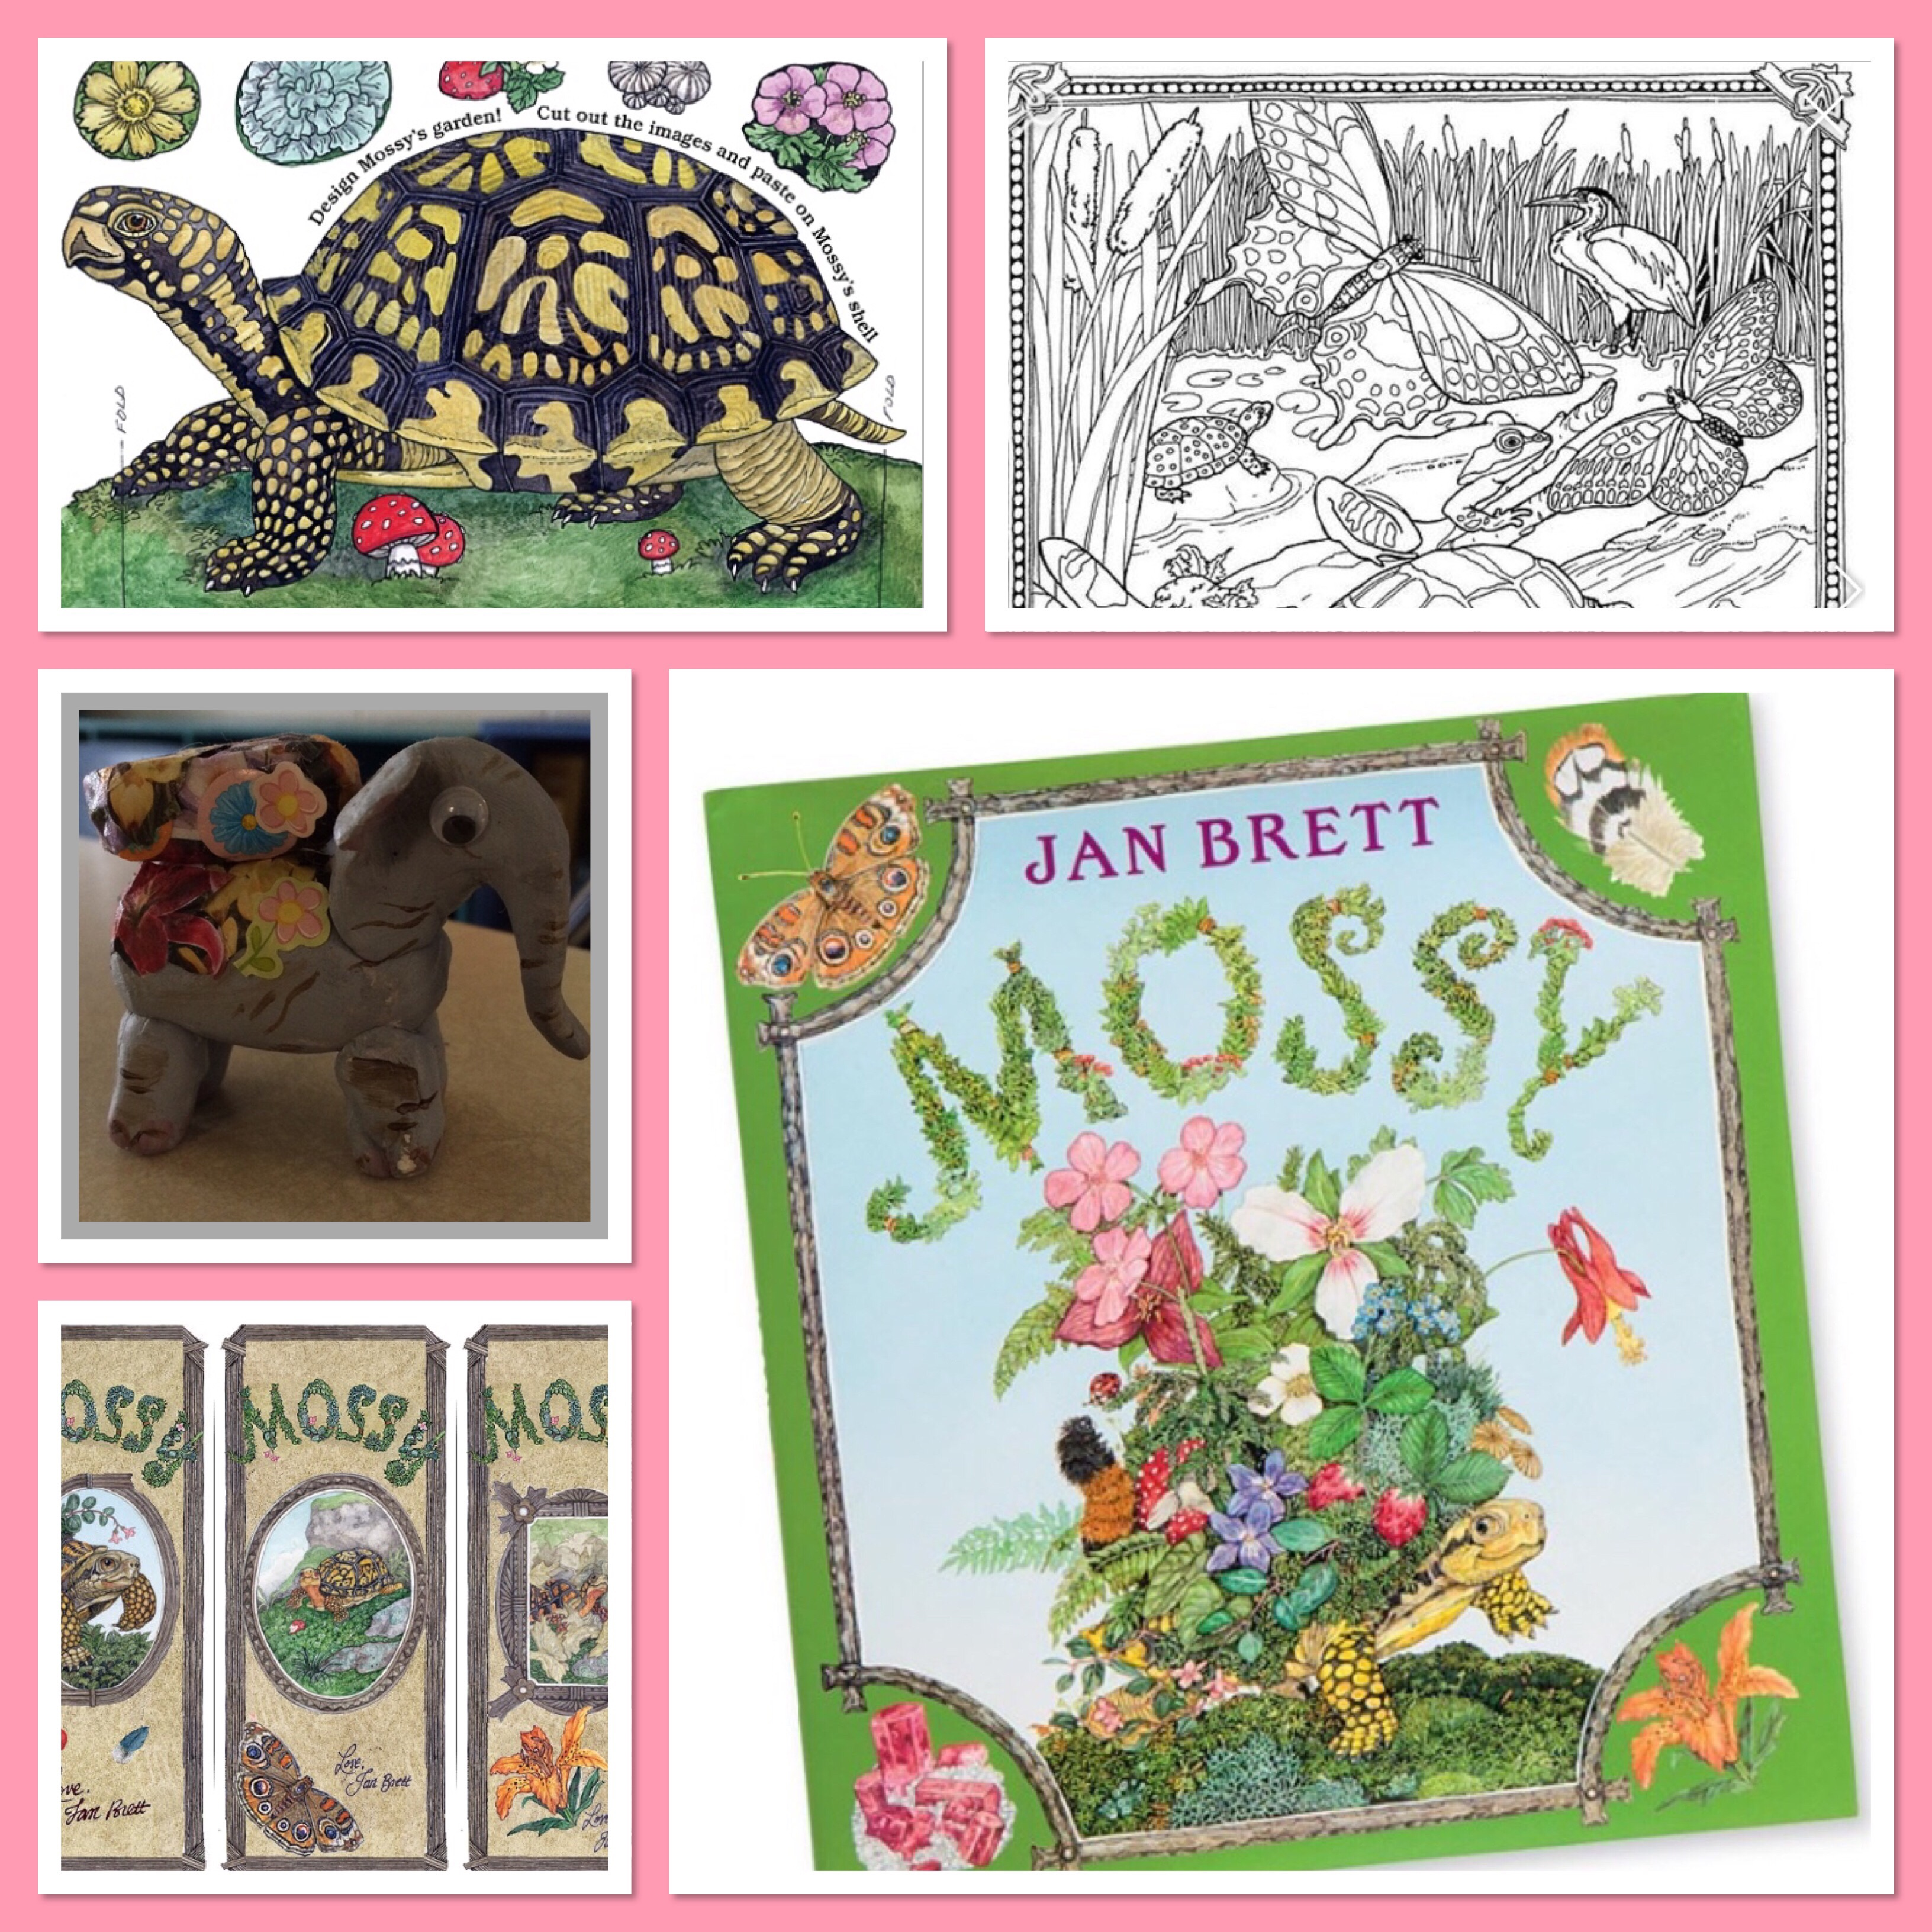 Mossy By Jan Brett And Activities